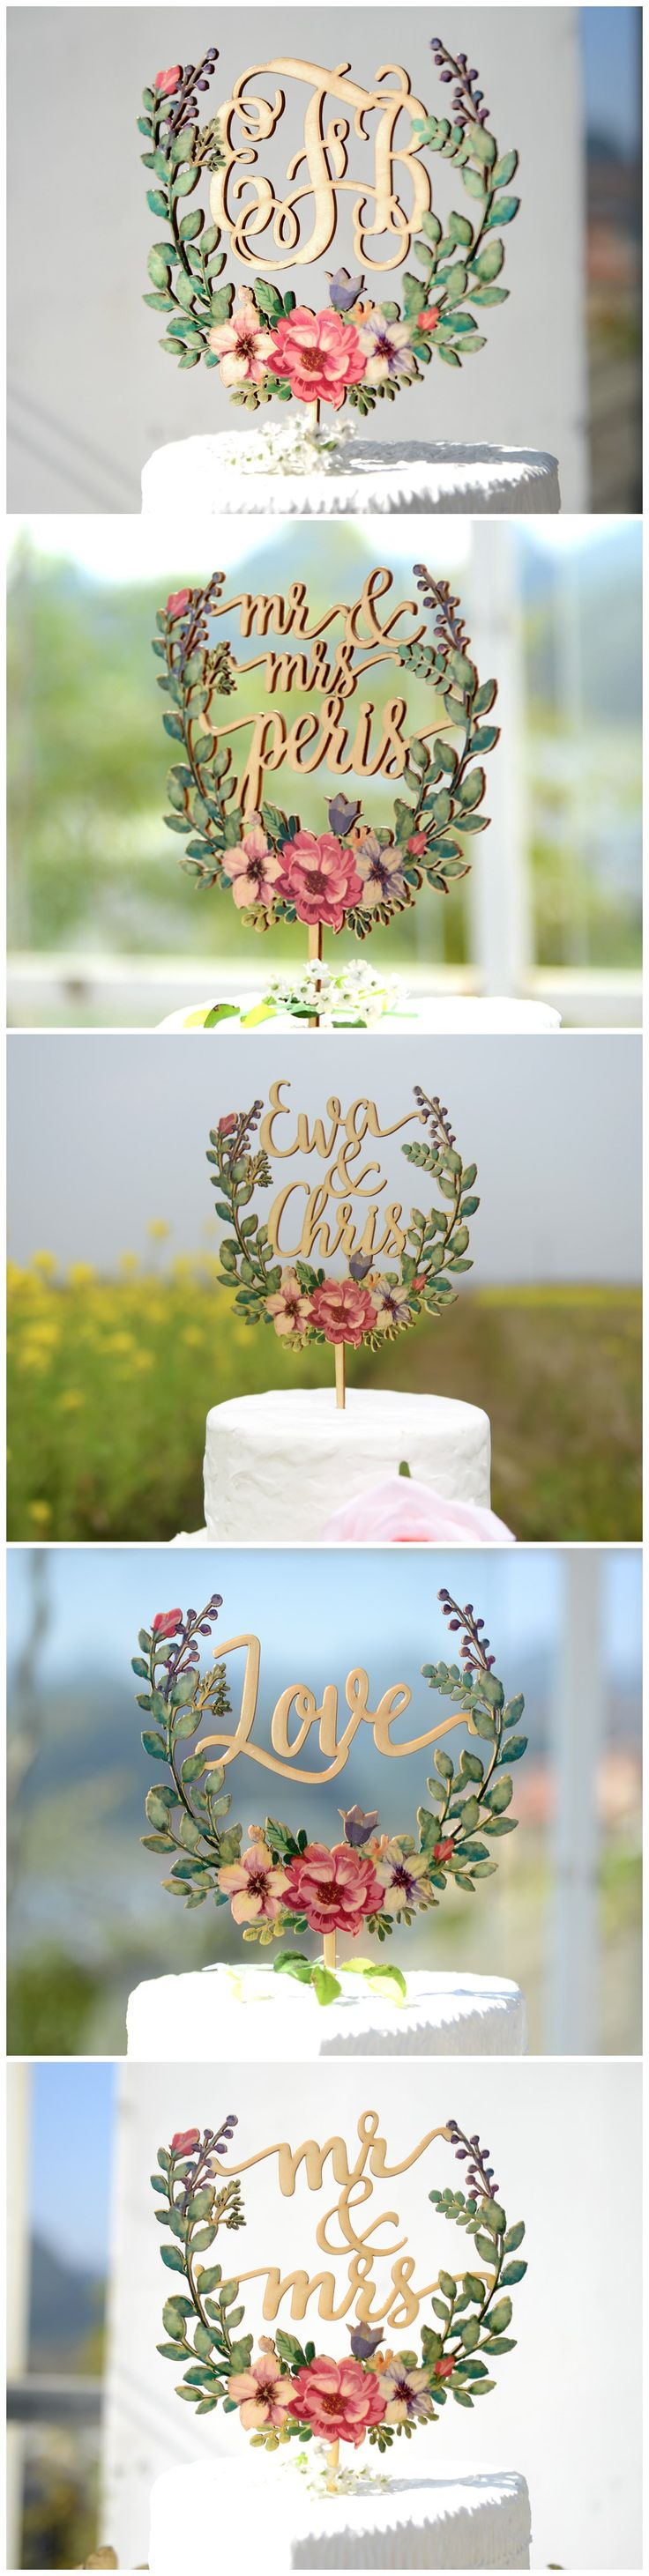 bridenew created personalized wedding cake toppers printed with colorful floral vectors. (Cake Topper Wedding)